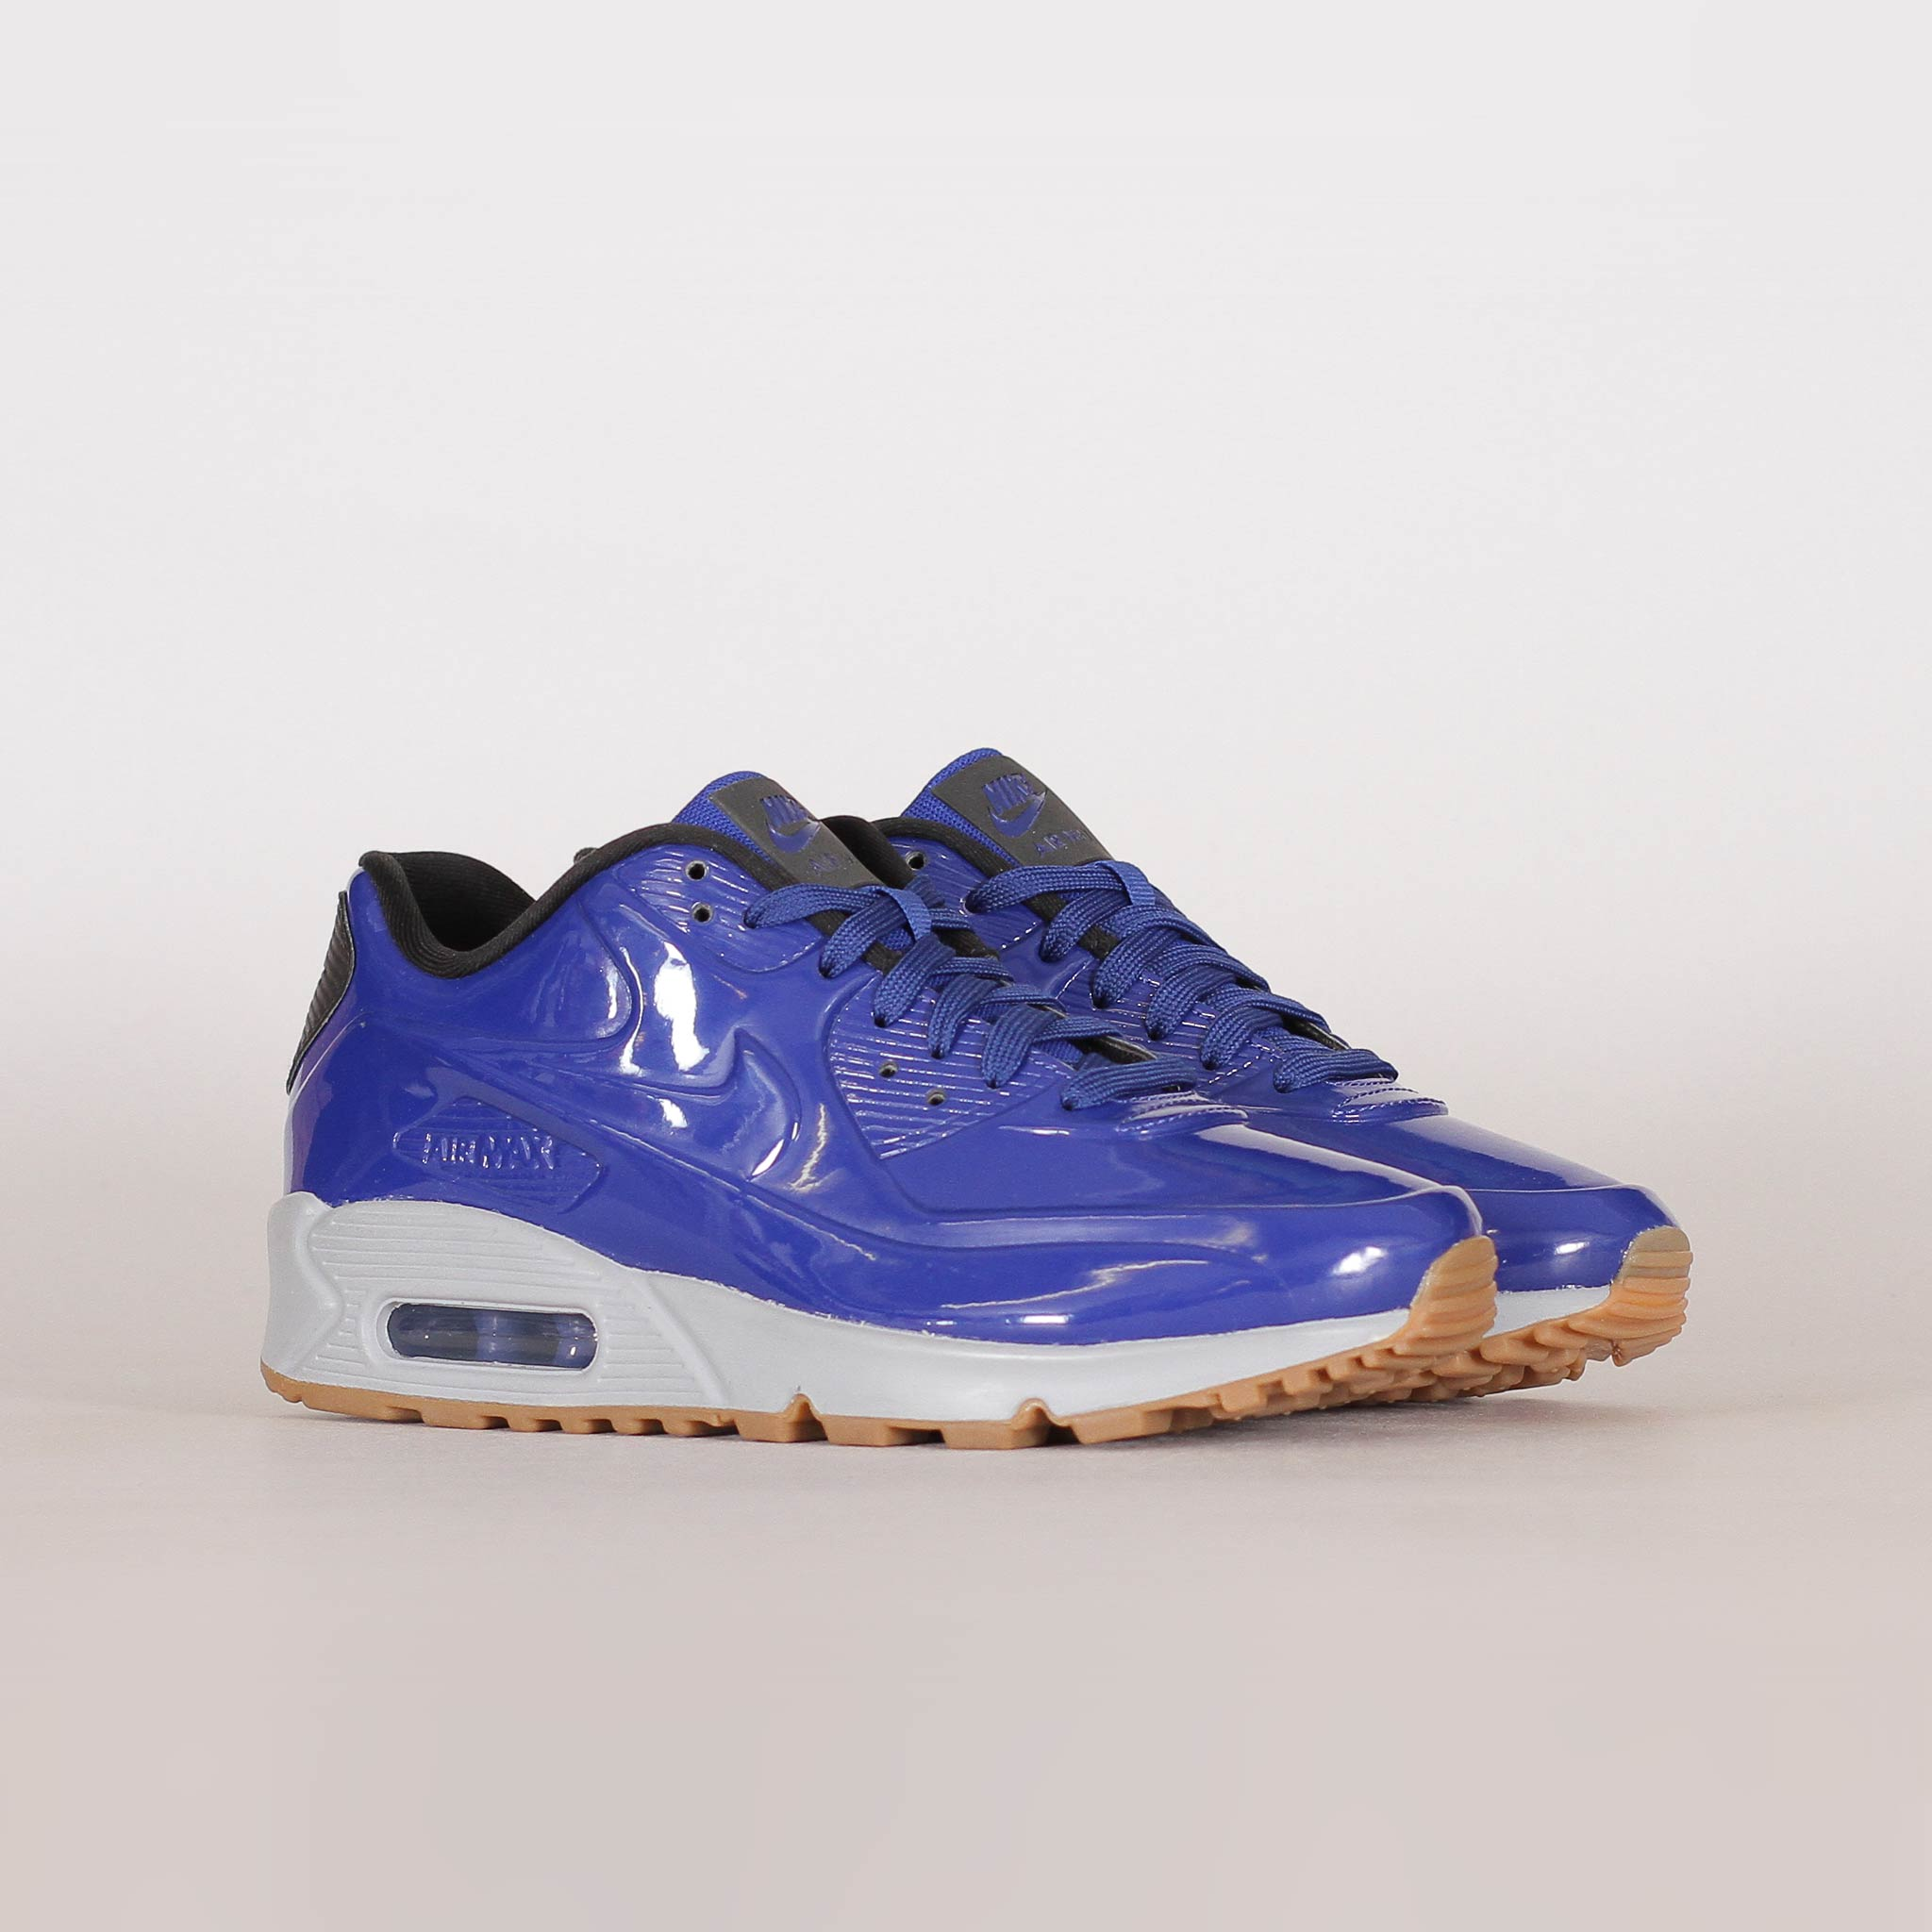 Nike Air Max 90 VT Quickstrike (831114 400)